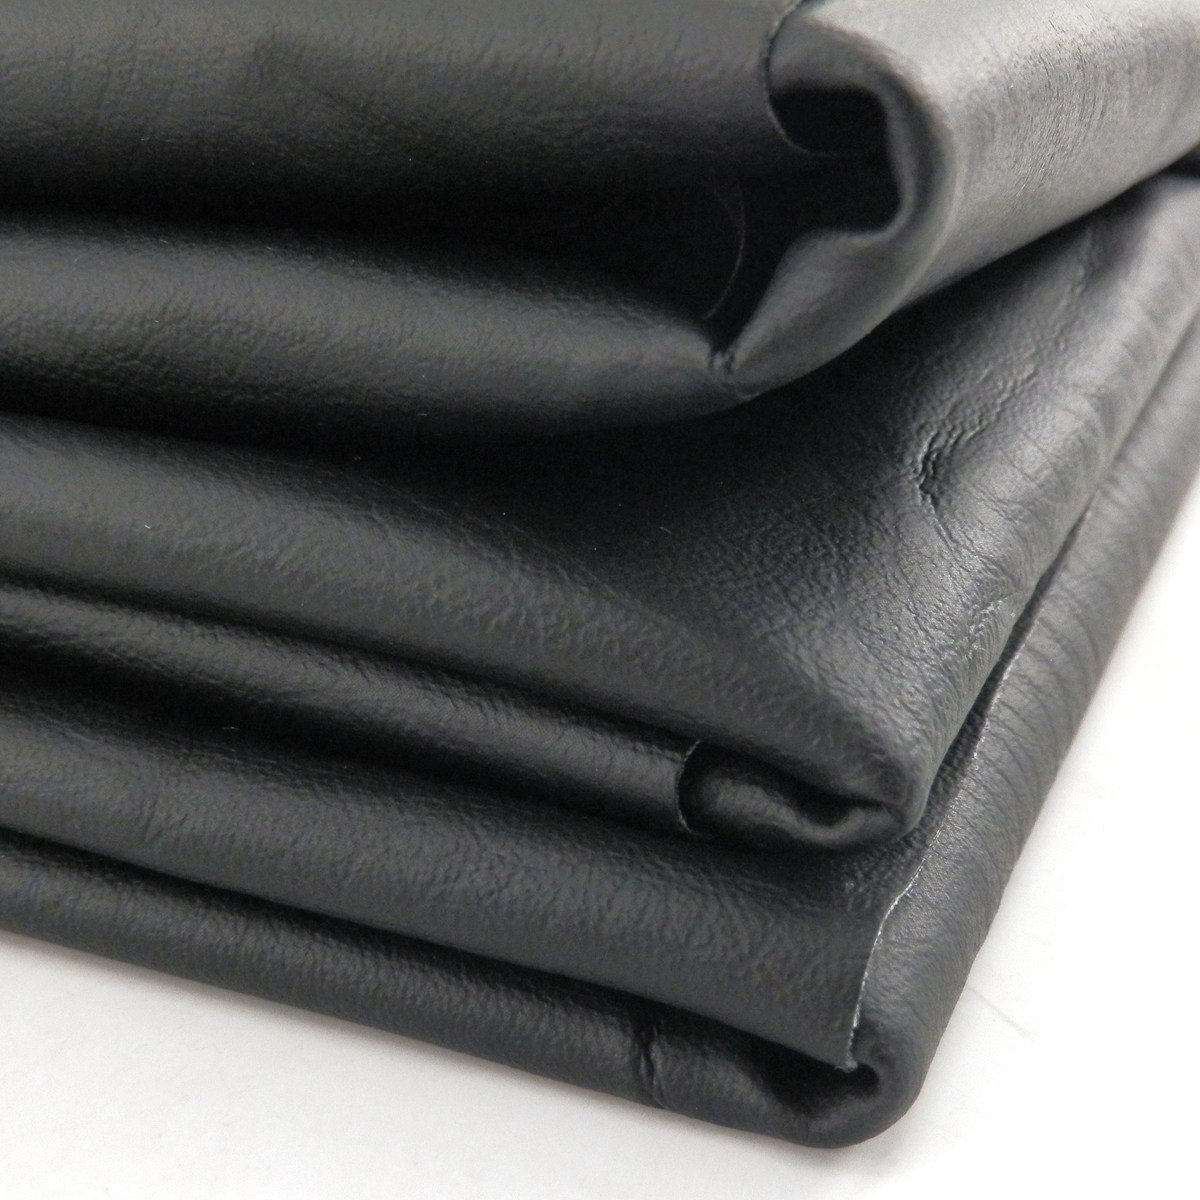 YunShuo DIY Seat Cover Texhide Vinyl Motorcycle ATV Scooter Fabric Matte Black 27 x 34